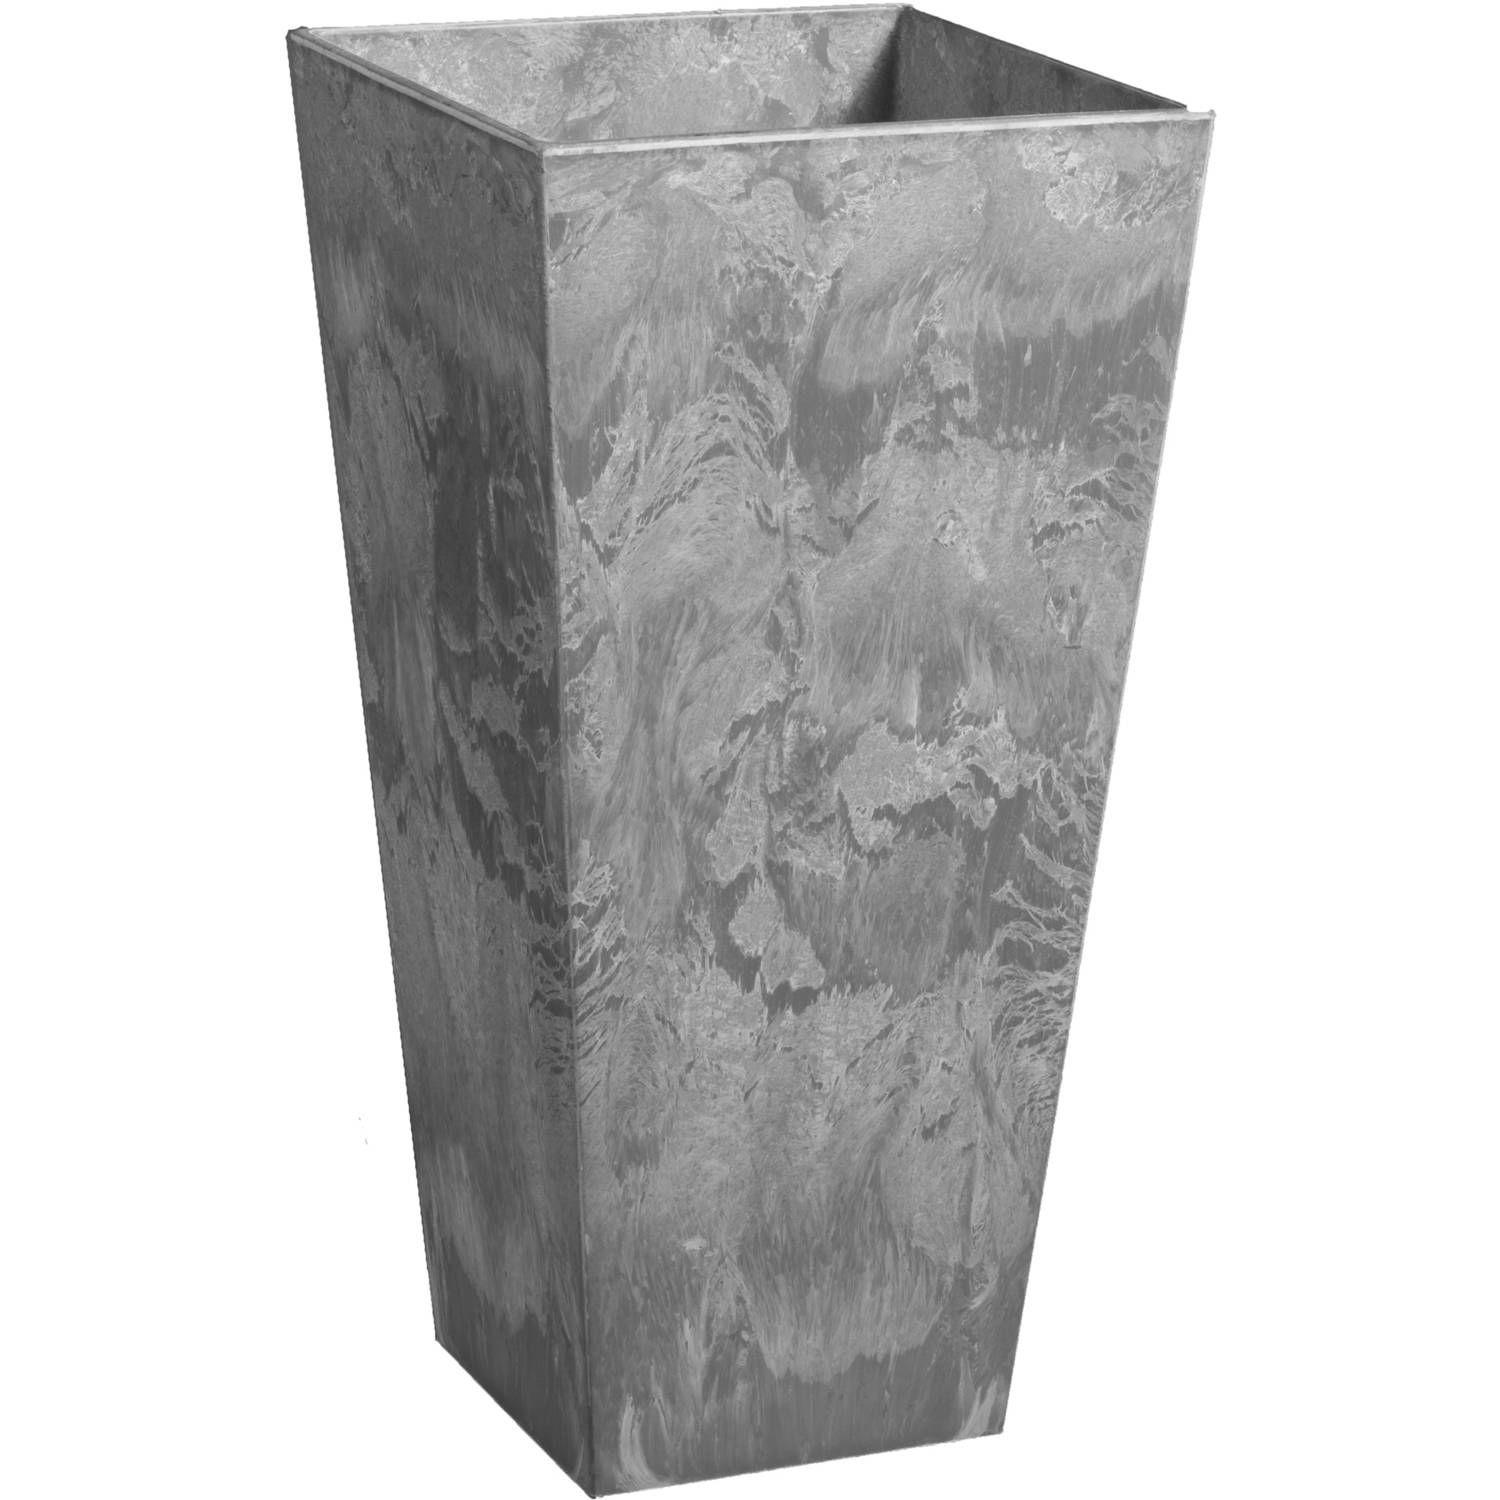 "Novelty Hardware 27.5"" Ella Tall Planter"